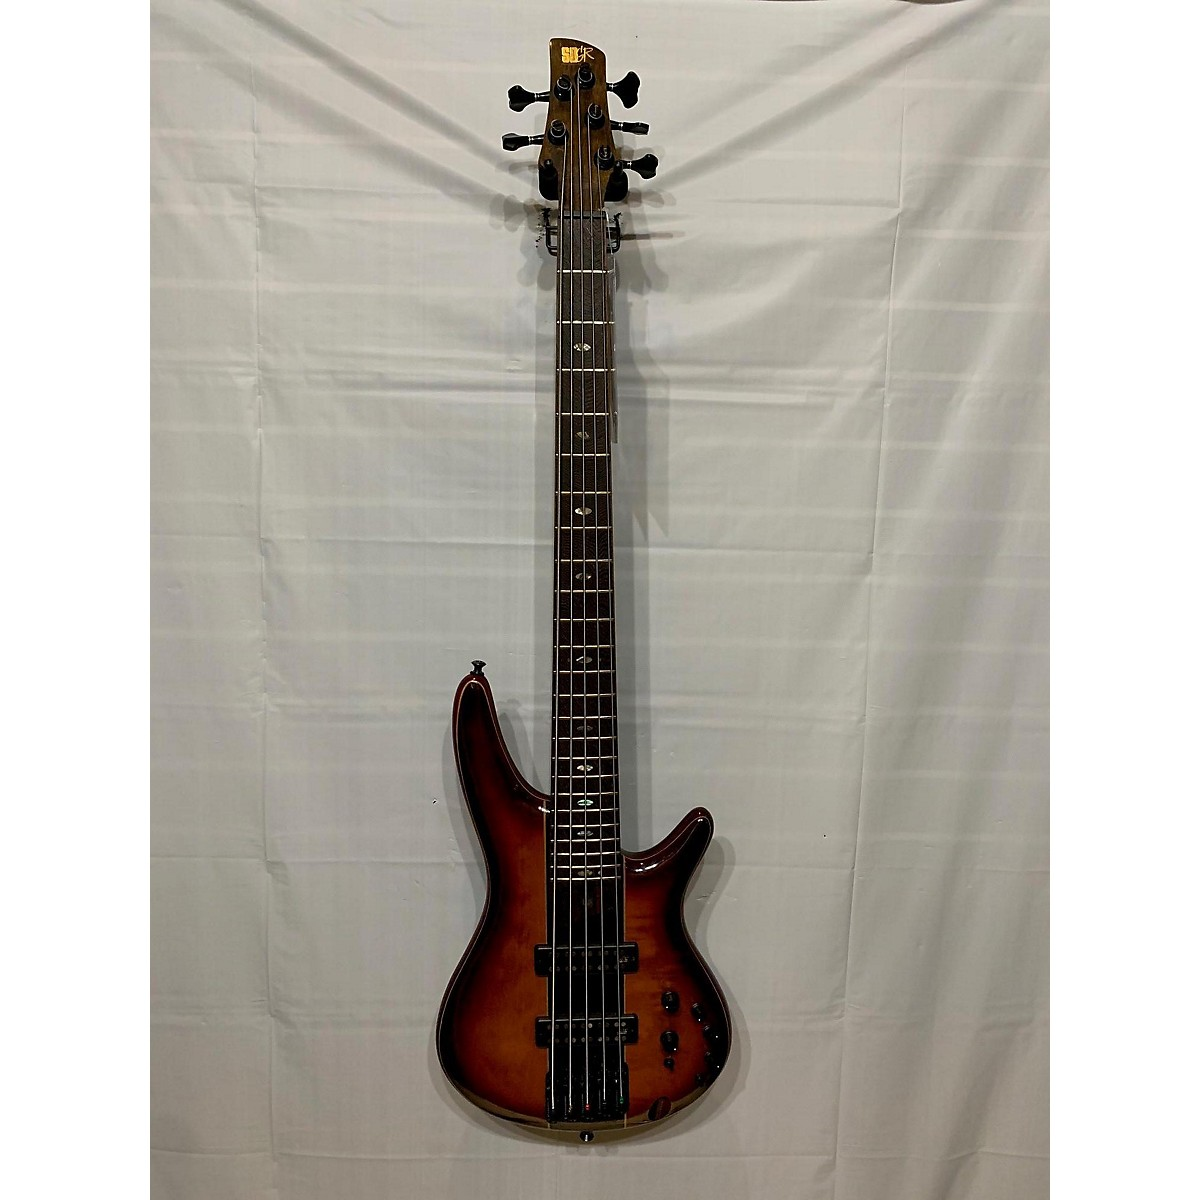 Ibanez SR2405W Quilted Maple Top 5-String Bass Brown Electric Bass Guitar